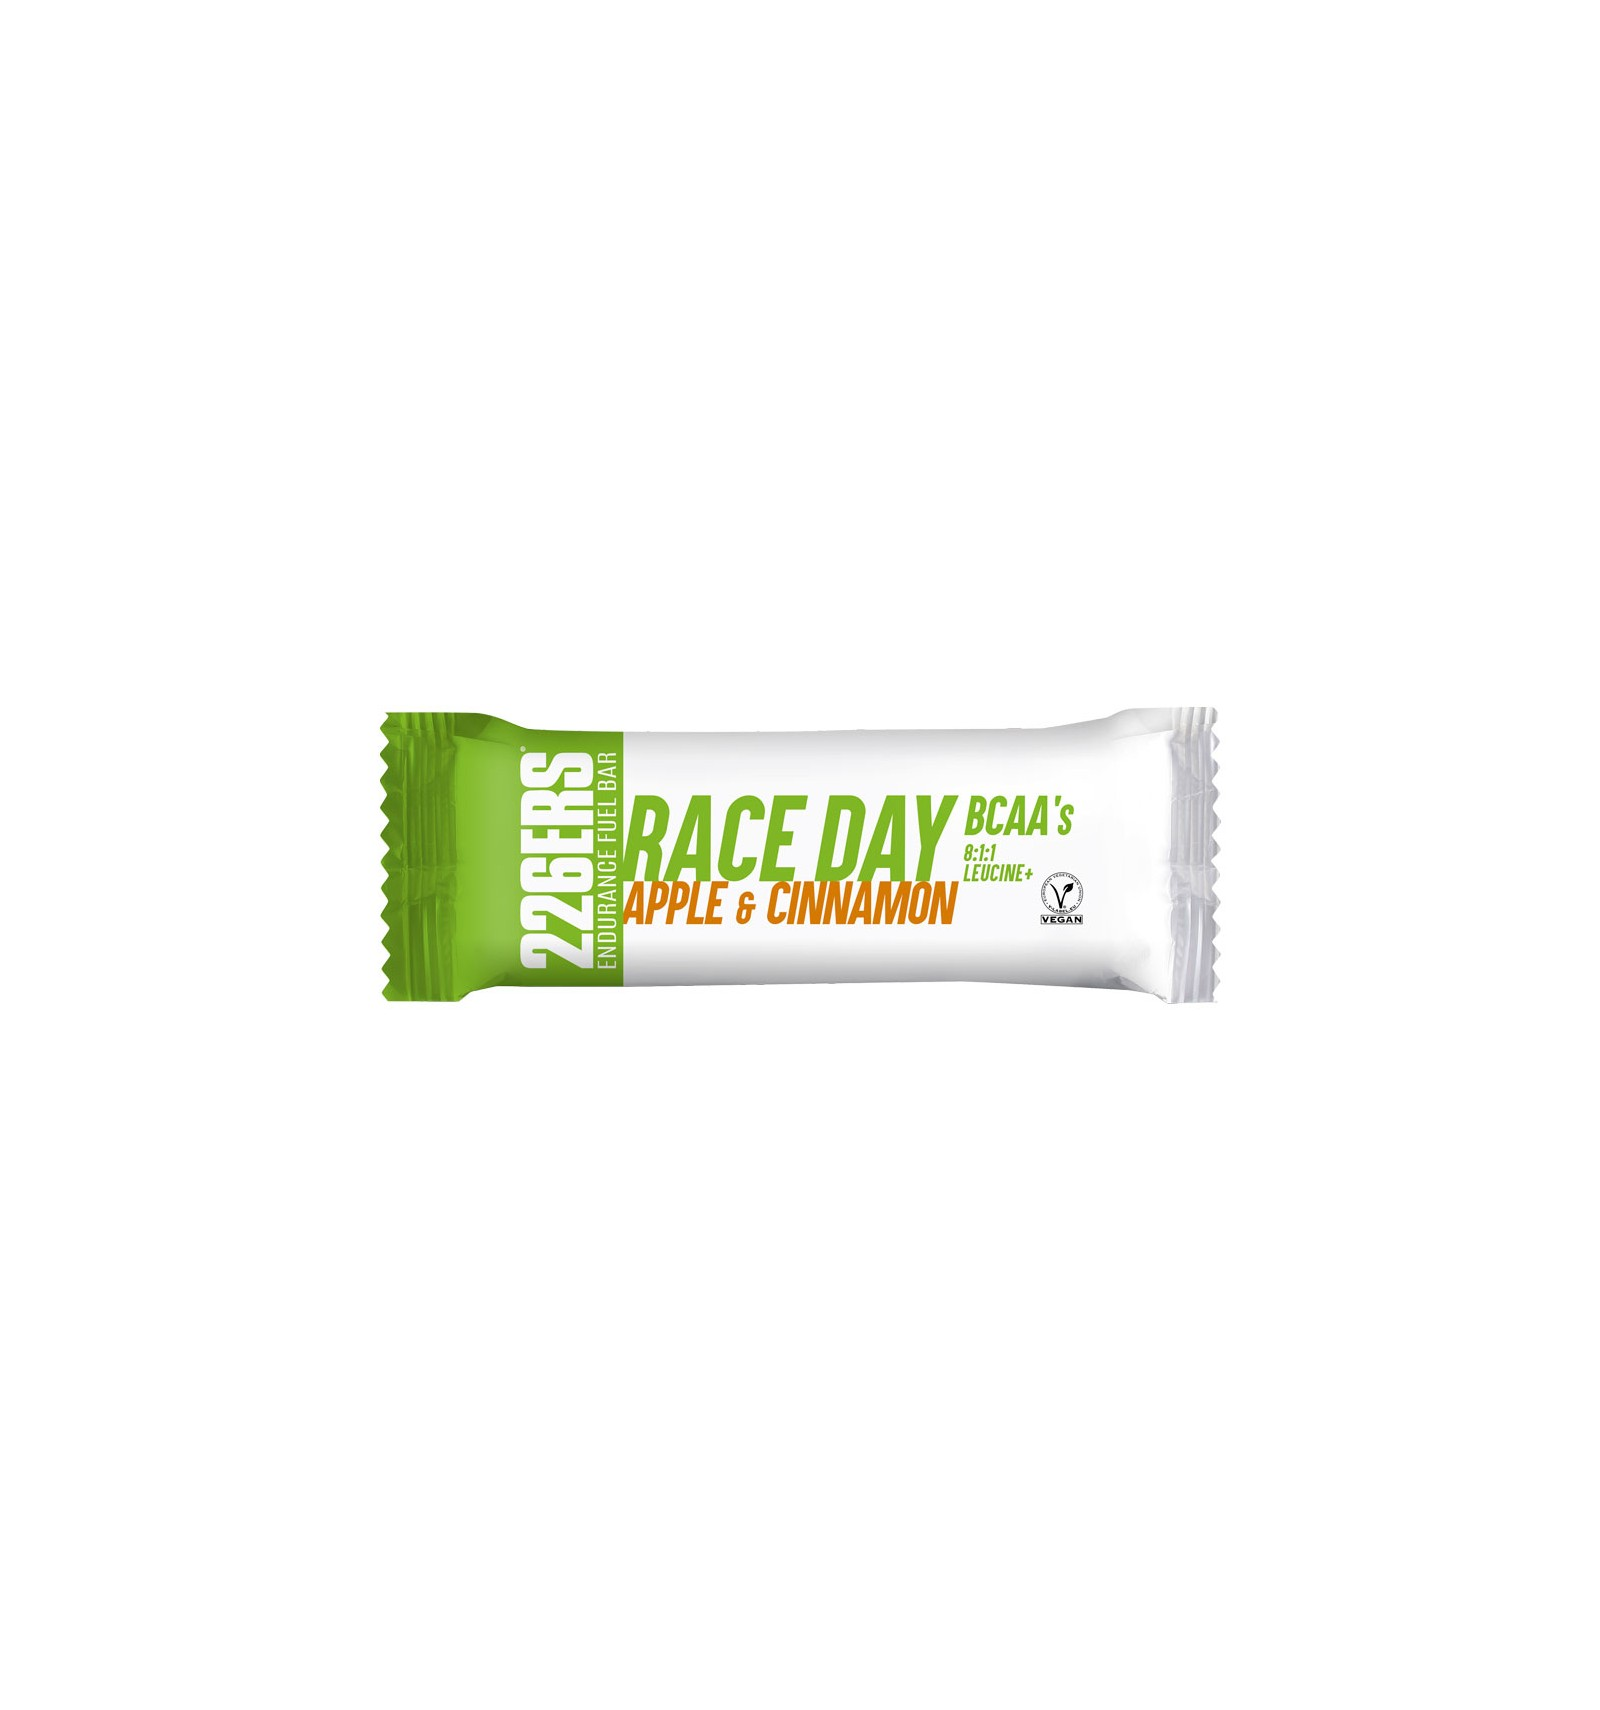 BA-RD-0470-AC RACE DAY BAR BCCAS 40GR APPLE & CINNAMON - 226ERS